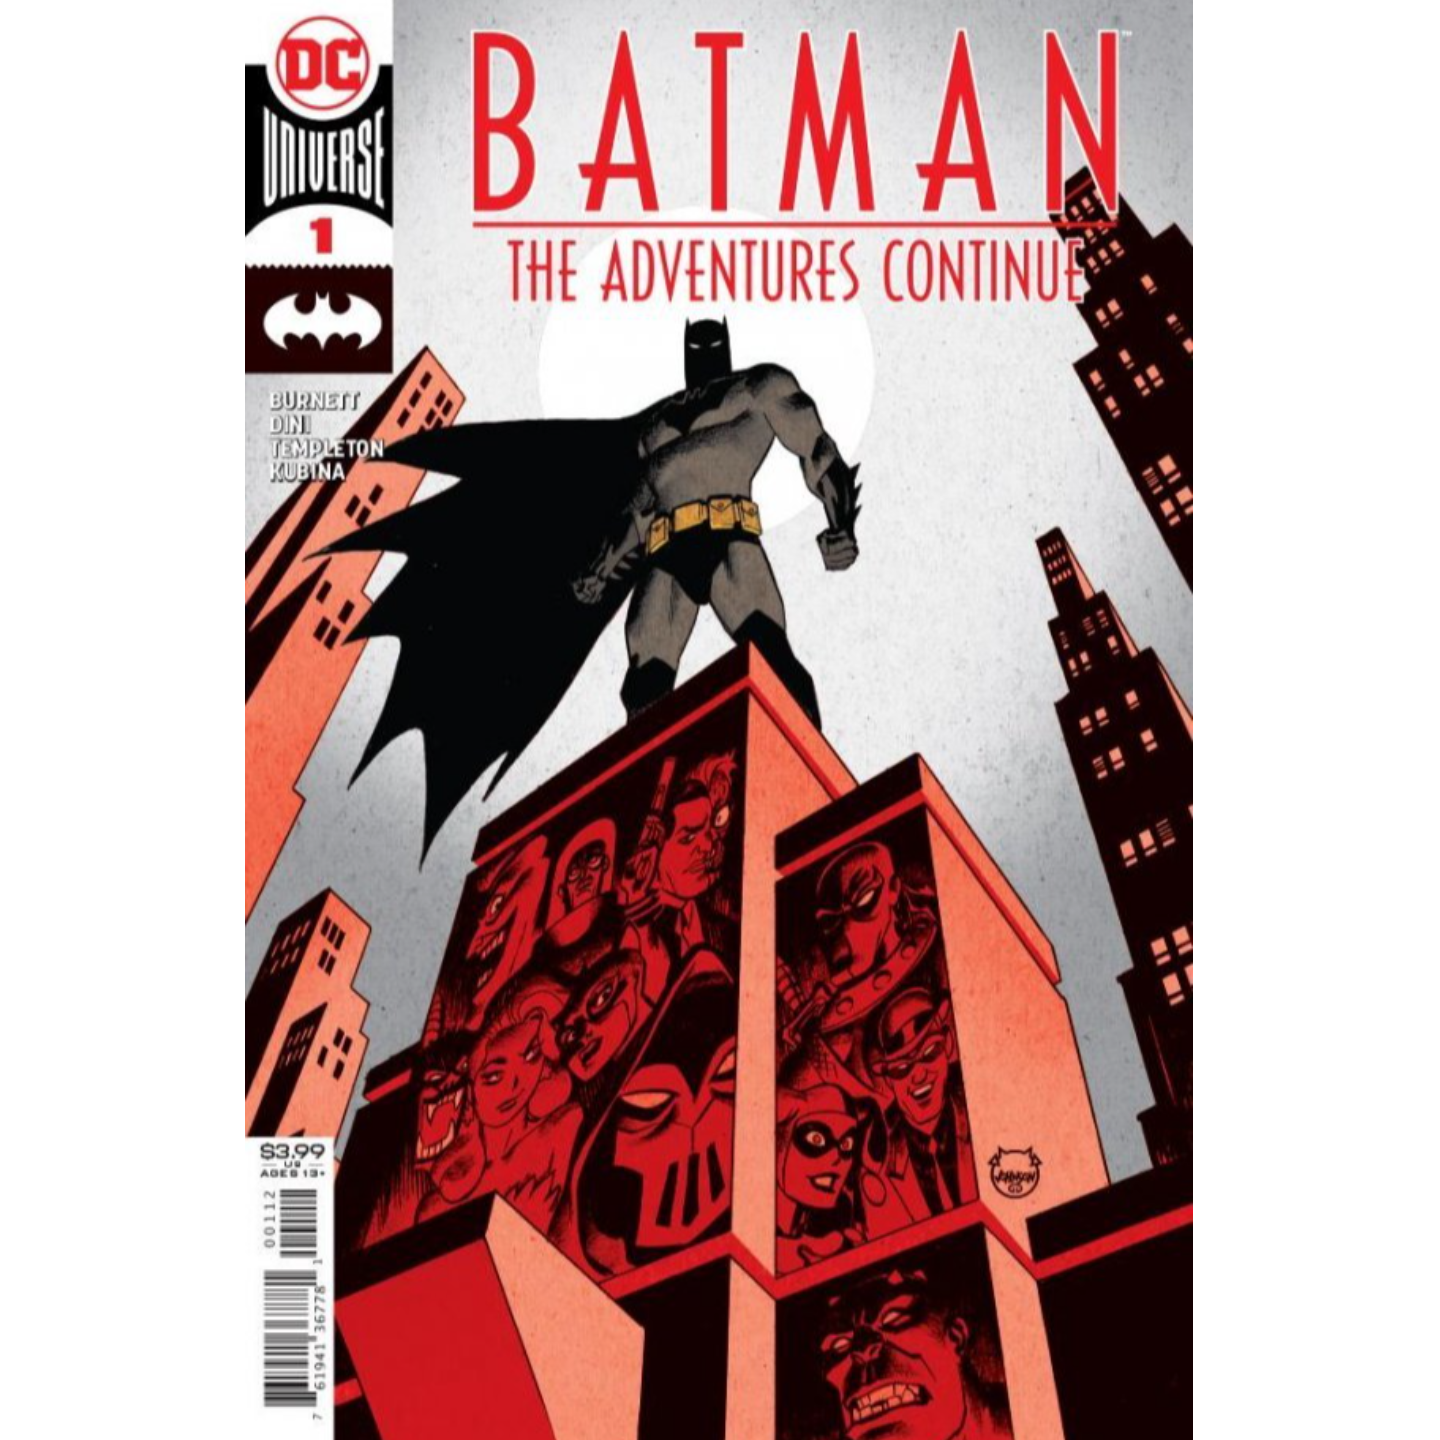 BATMAN THE ADVENTURES CONTINUE #1 (OF 6) Second printing